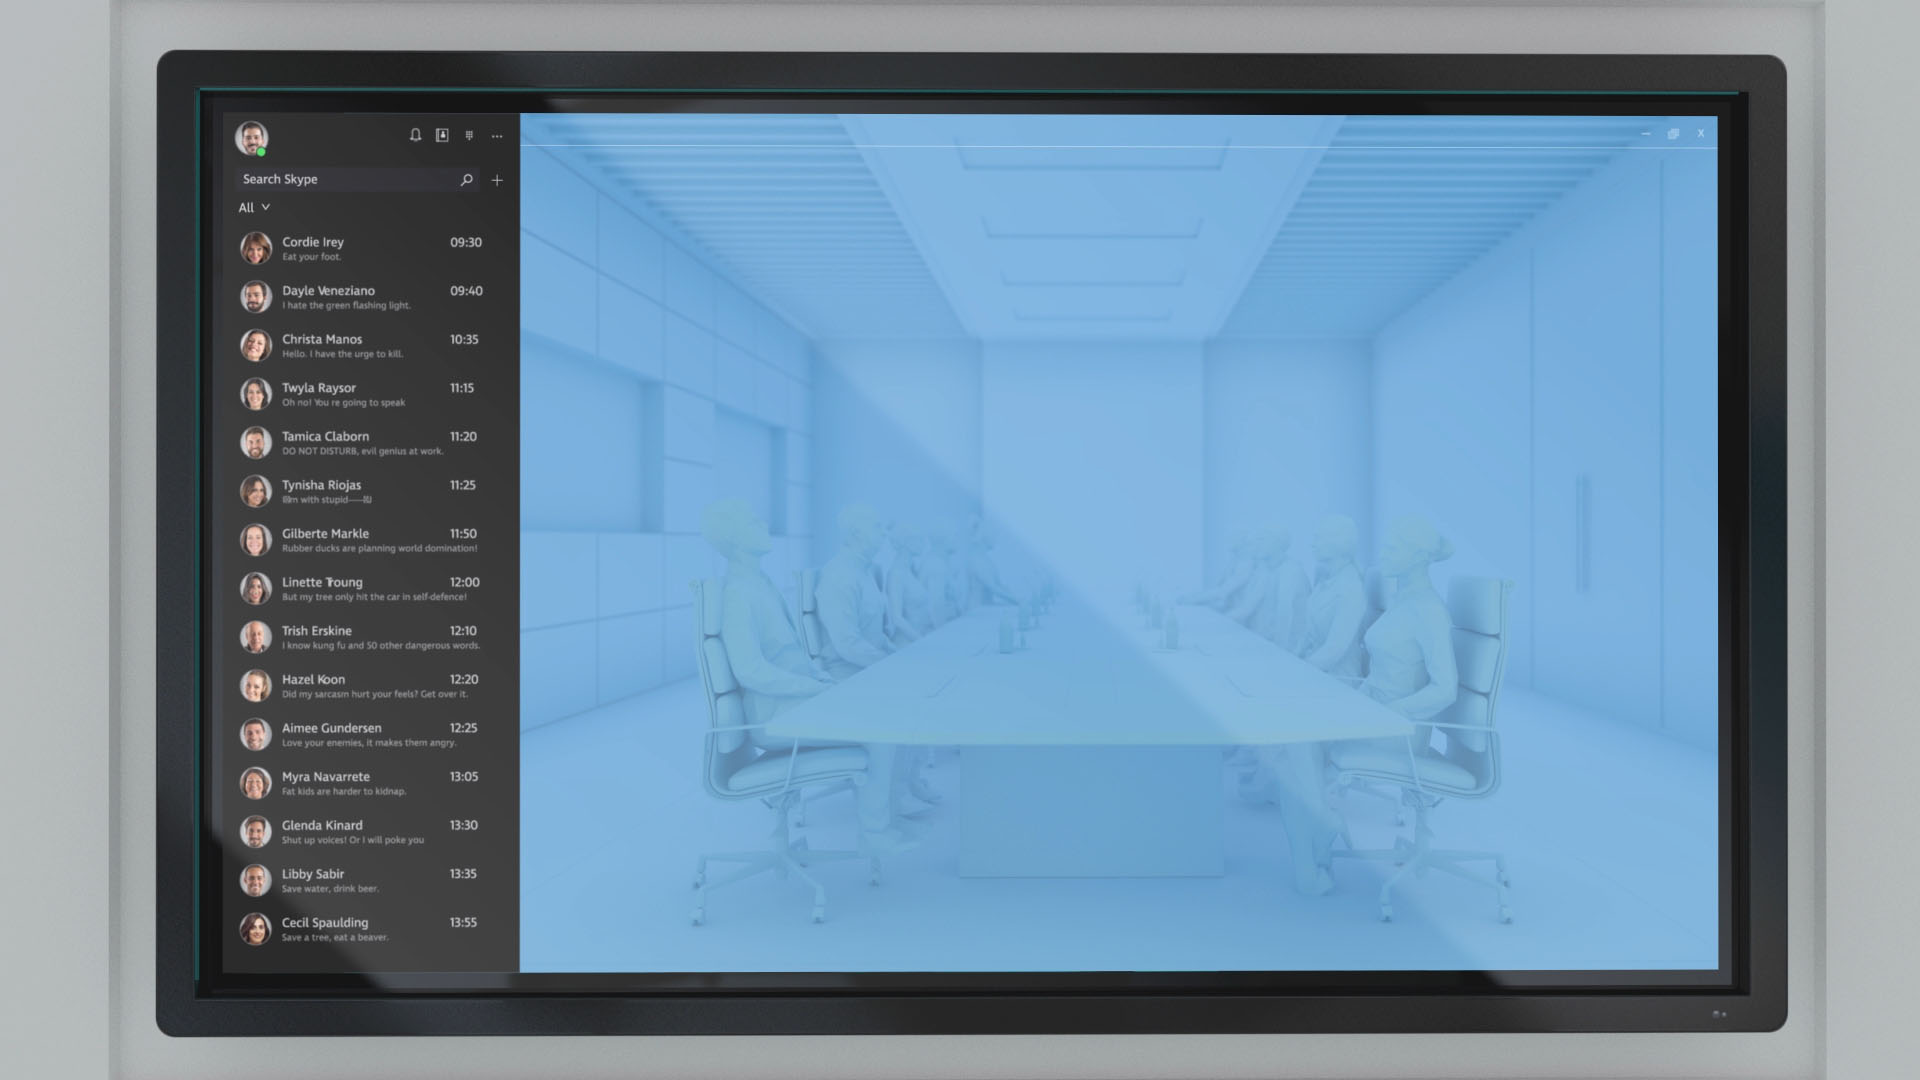 Clevertouch_screem shots_#_0007_Layer 8